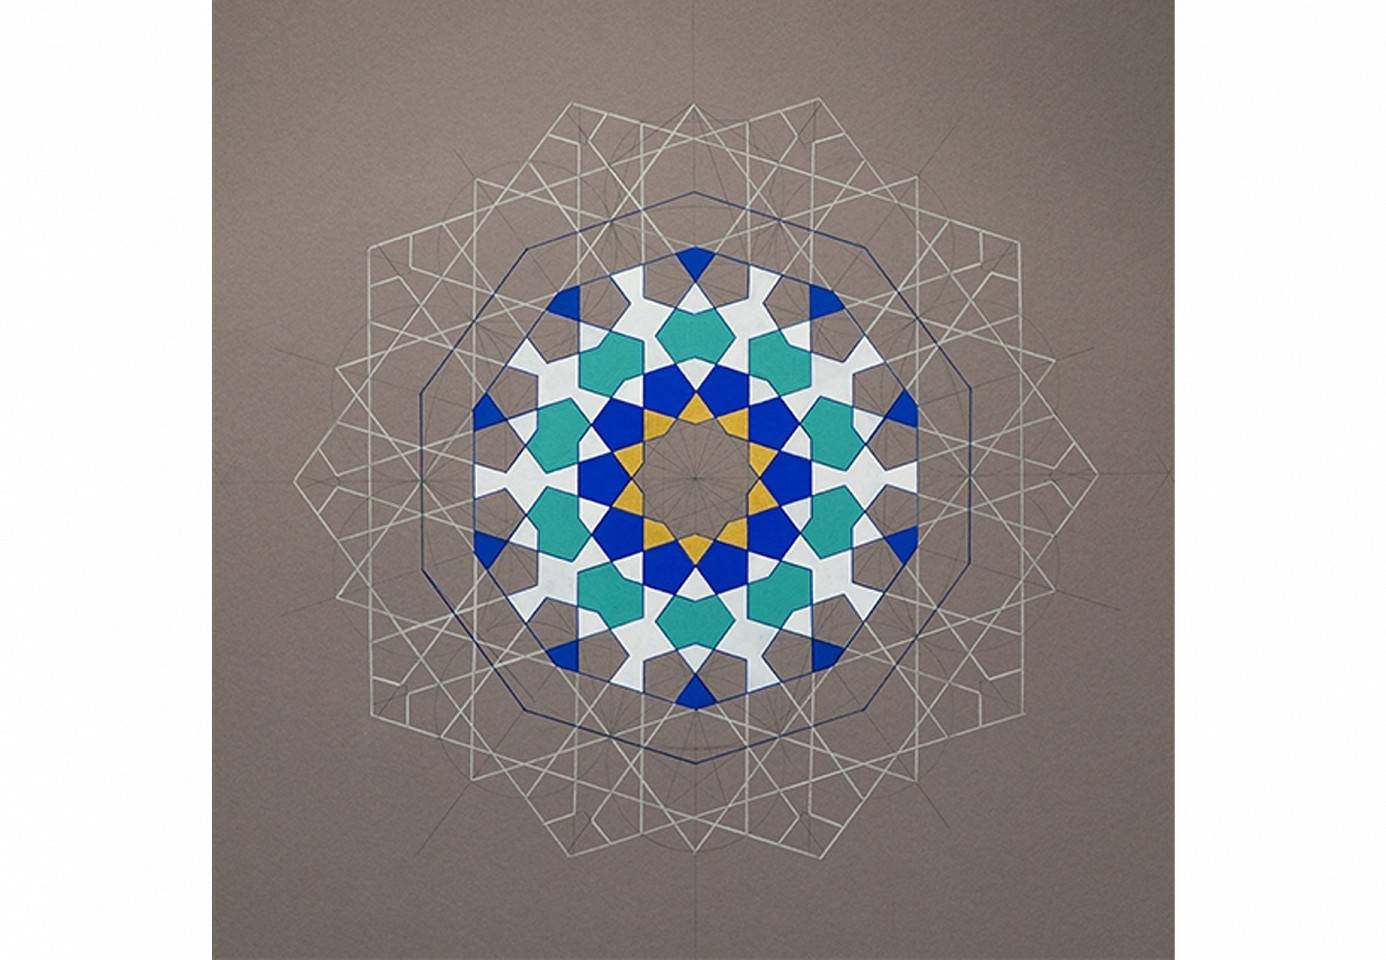 "<p><span class=""viewer-caption-artist"">Dana Awartani</span></p> <p><span class=""viewer-caption-title""><i>Dodecahedron (Heaven)</i></span>, <span class=""viewer-caption-year"">2014</span></p> <p><span class=""viewer-caption-media"">Pencil & national pigments on mount board</span></p> <p><span class=""viewer-caption-dimensions"">81 x 81 cm (31 7/8 x 31 7/8 in.)</span></p> <p><span class=""viewer-caption-description"">From the Platonic Solids series</span></p> <p><span class=""viewer-caption-inventory"">DAN0039</span></p> <p><span class=""viewer-caption-aux""></span></p>"